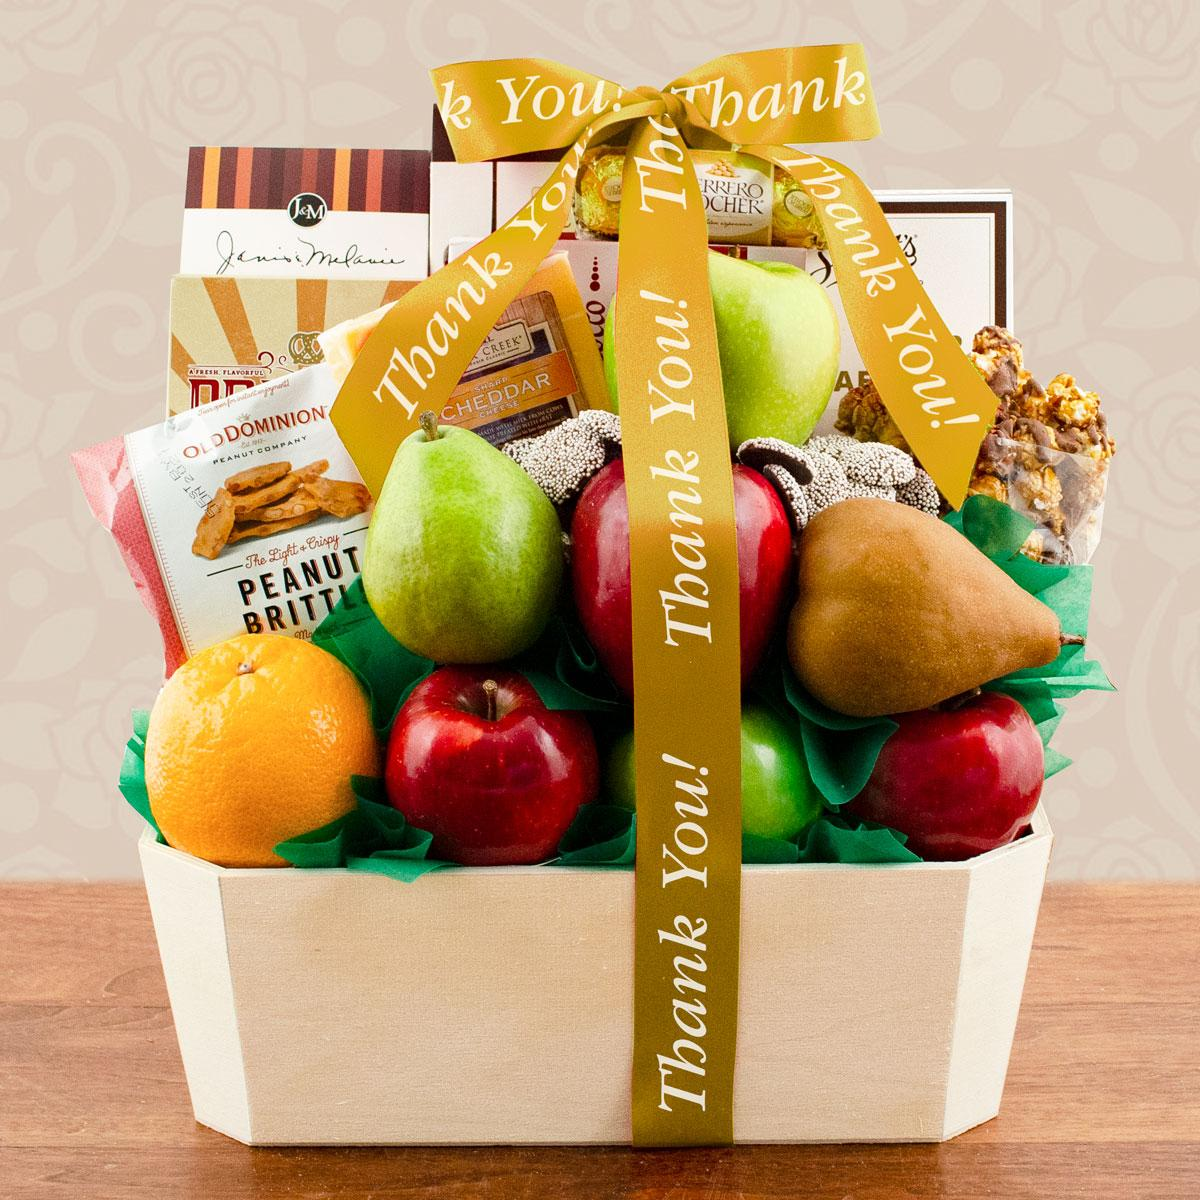 Capalbos Orchard Fruit Gift Basket - Thank You